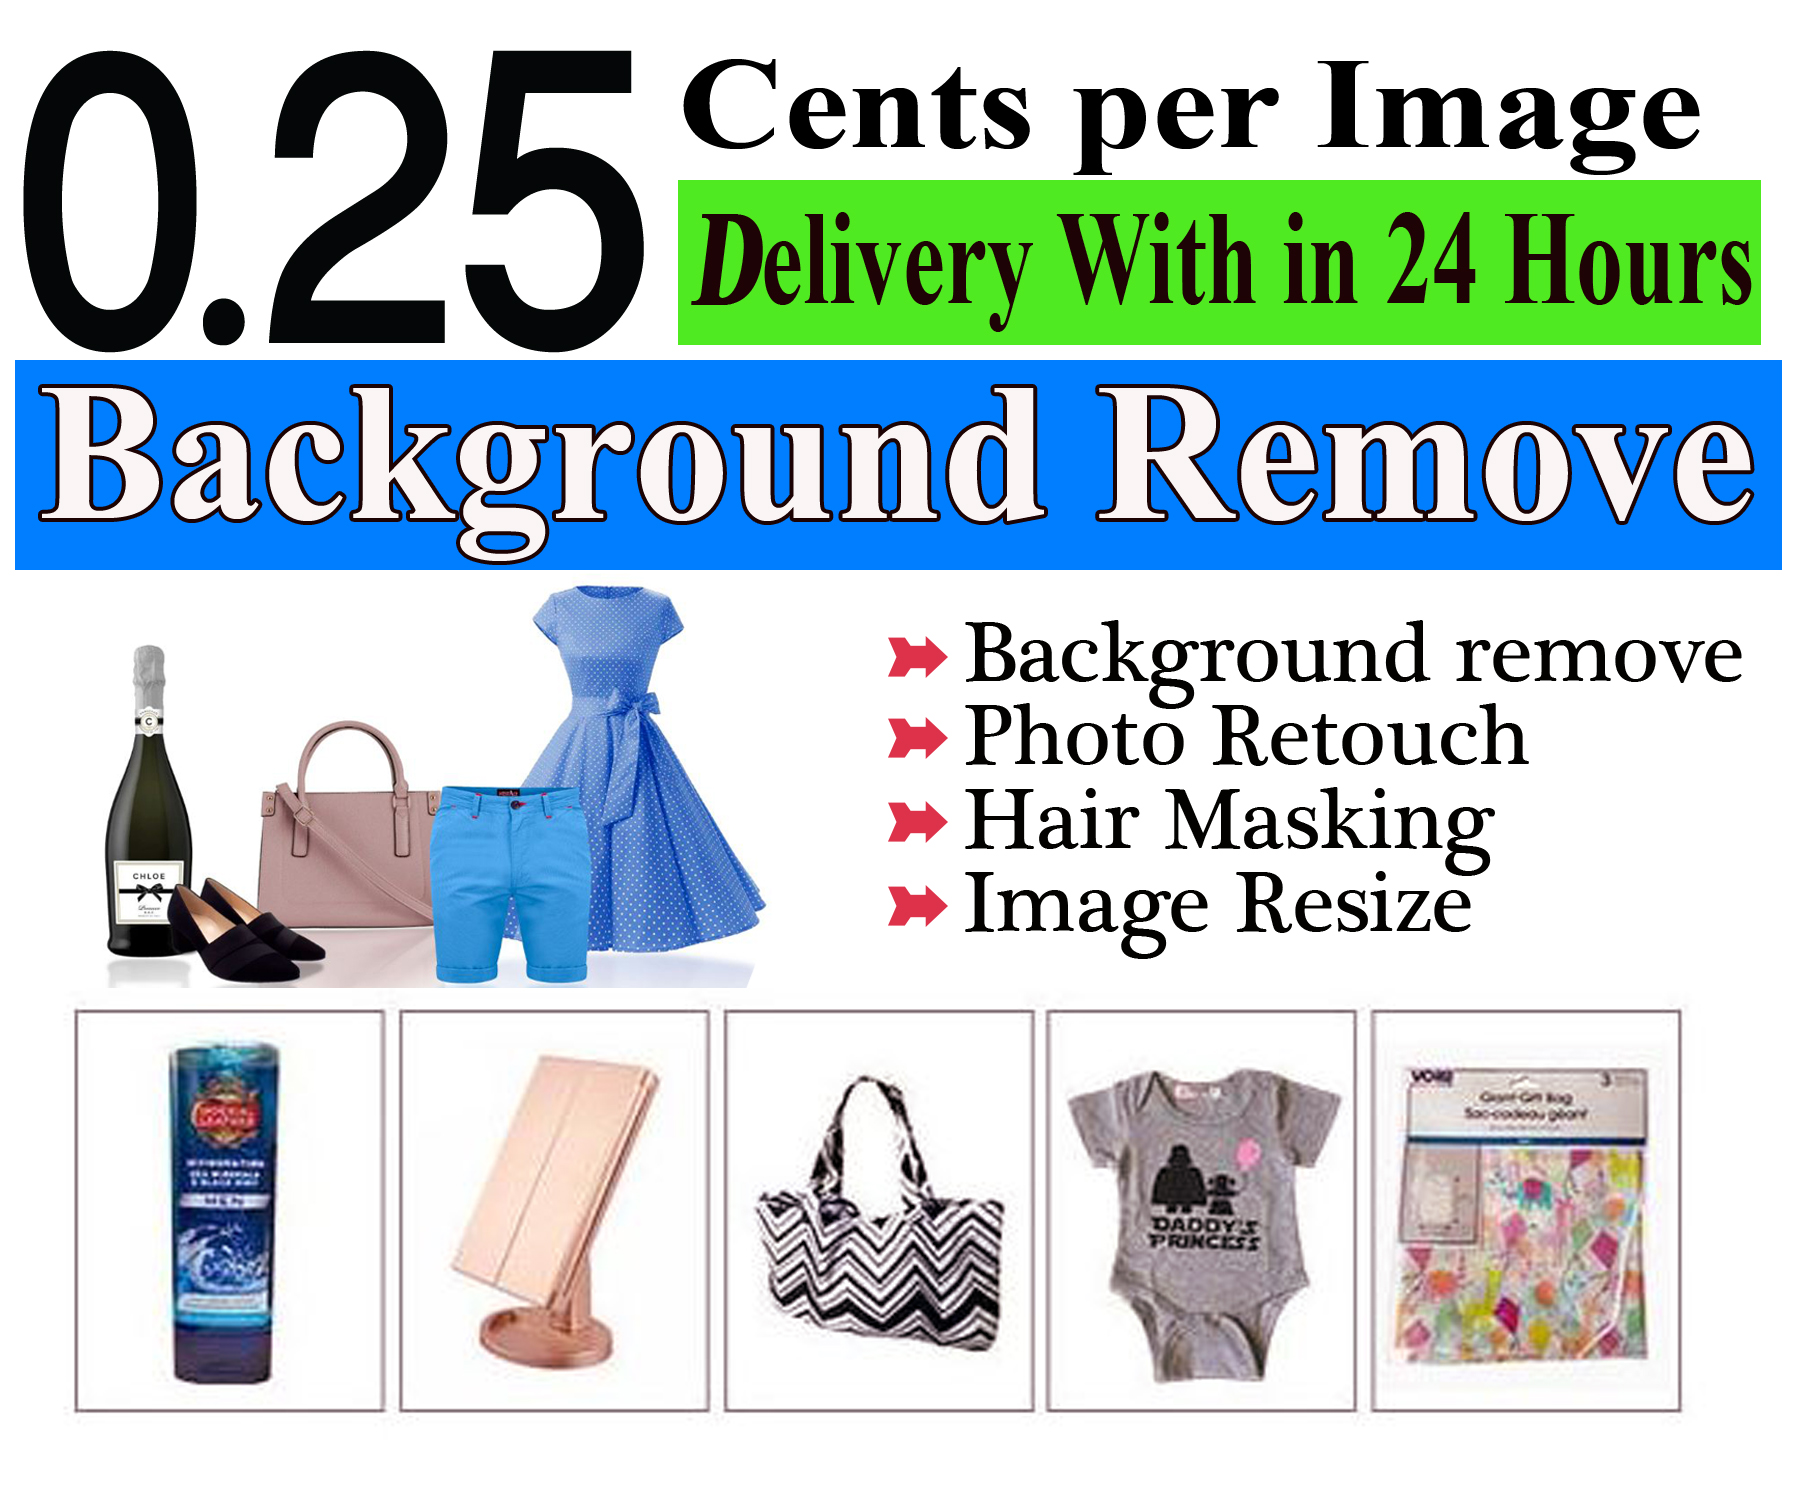 I will do super fast photo background removal, Editing & Retouching.